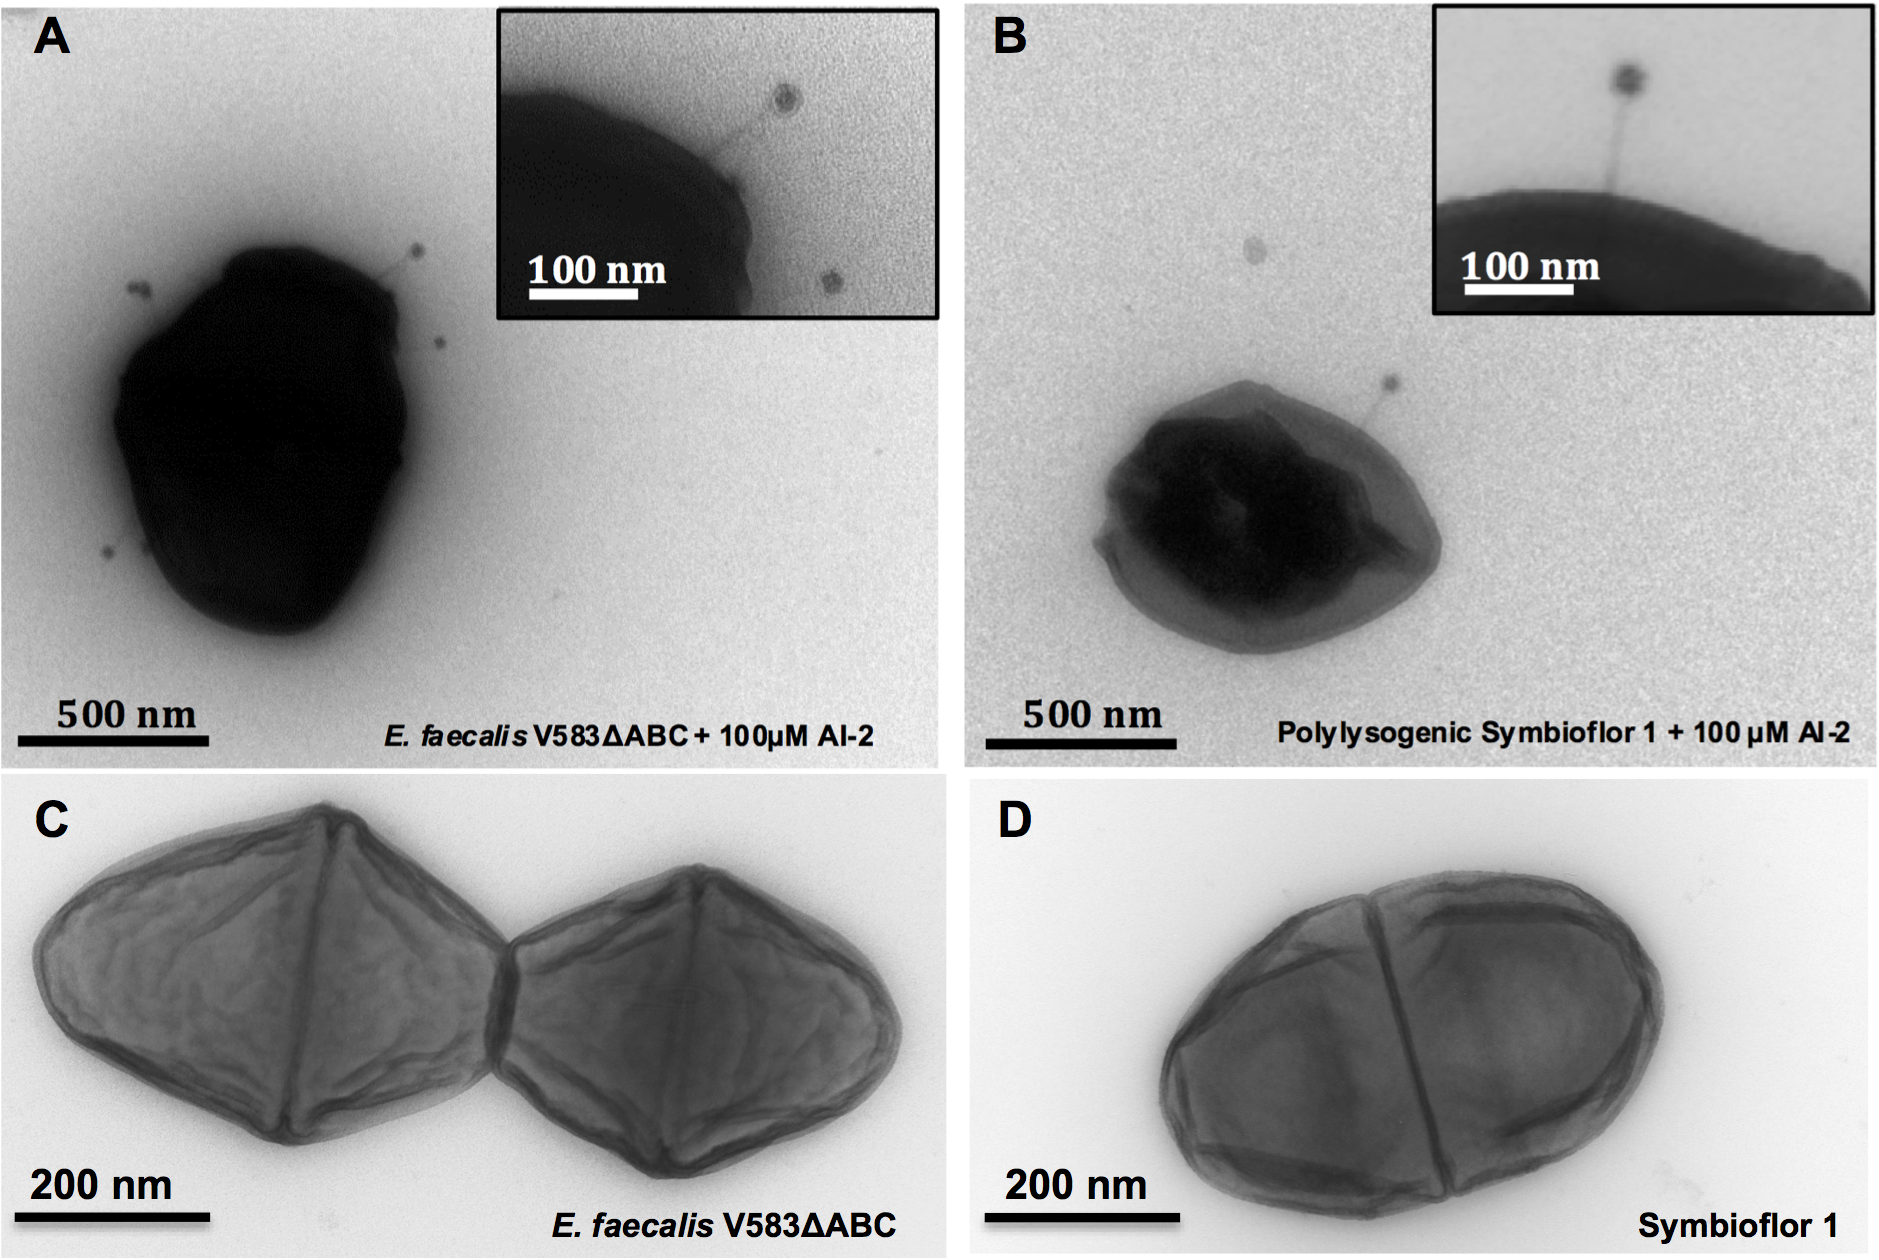 Transmission Electron Micrographs of <i>E. faecalis</i> V583ΔABC and Symbioflor 1 surface-associated phages after induction with 100 μM AI-2 and controls.